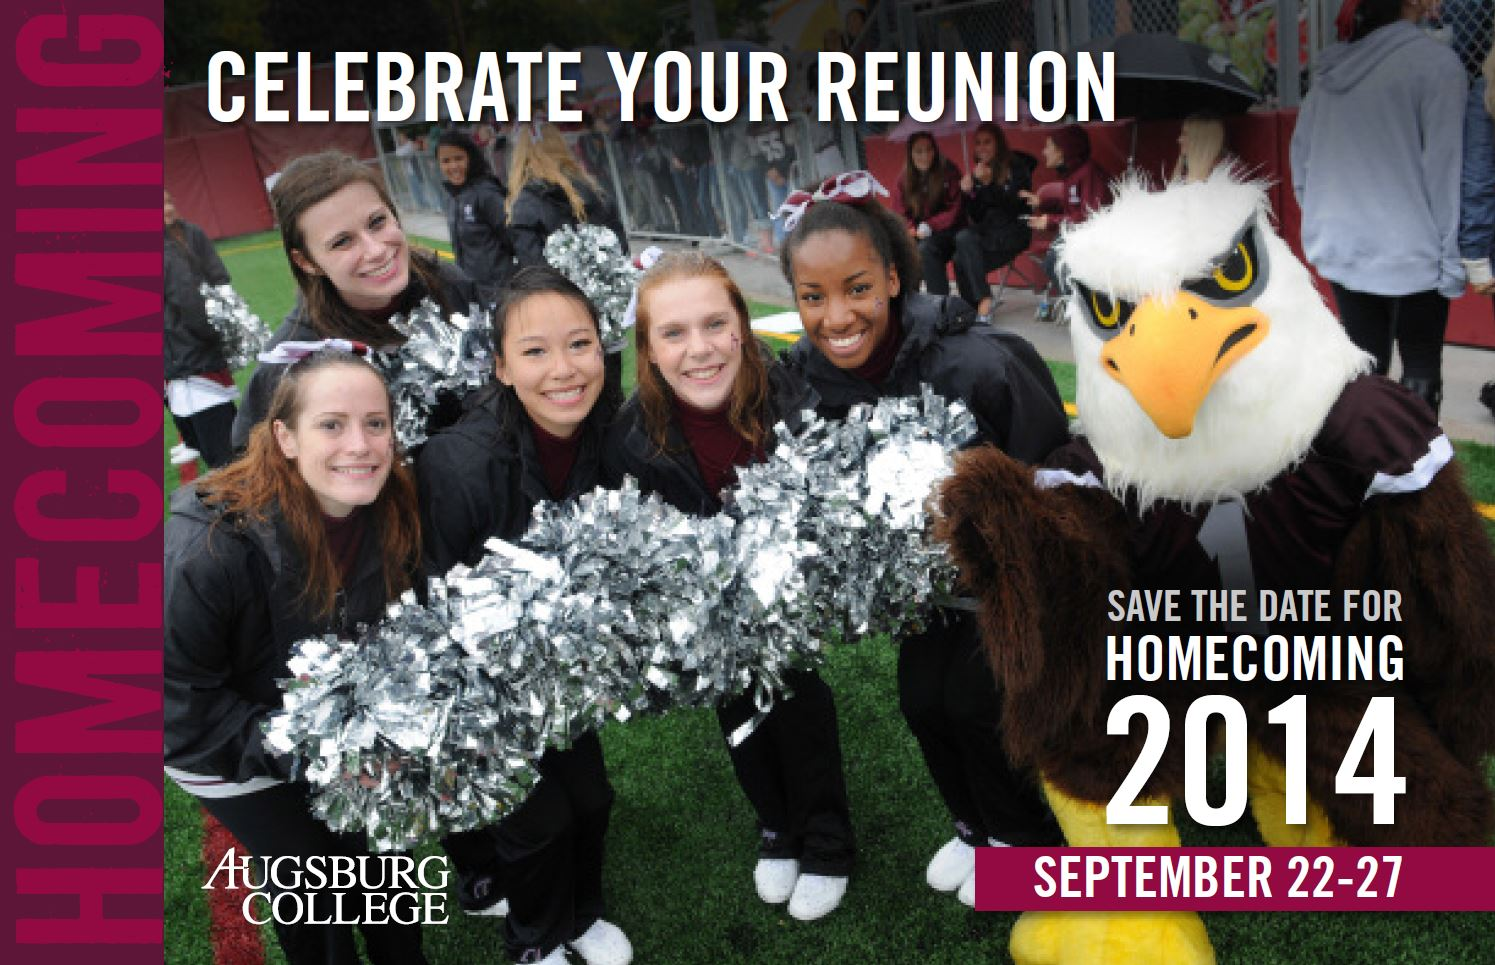 Celebrate your reunion. Save the date for Homecoming 2014, September 22-27